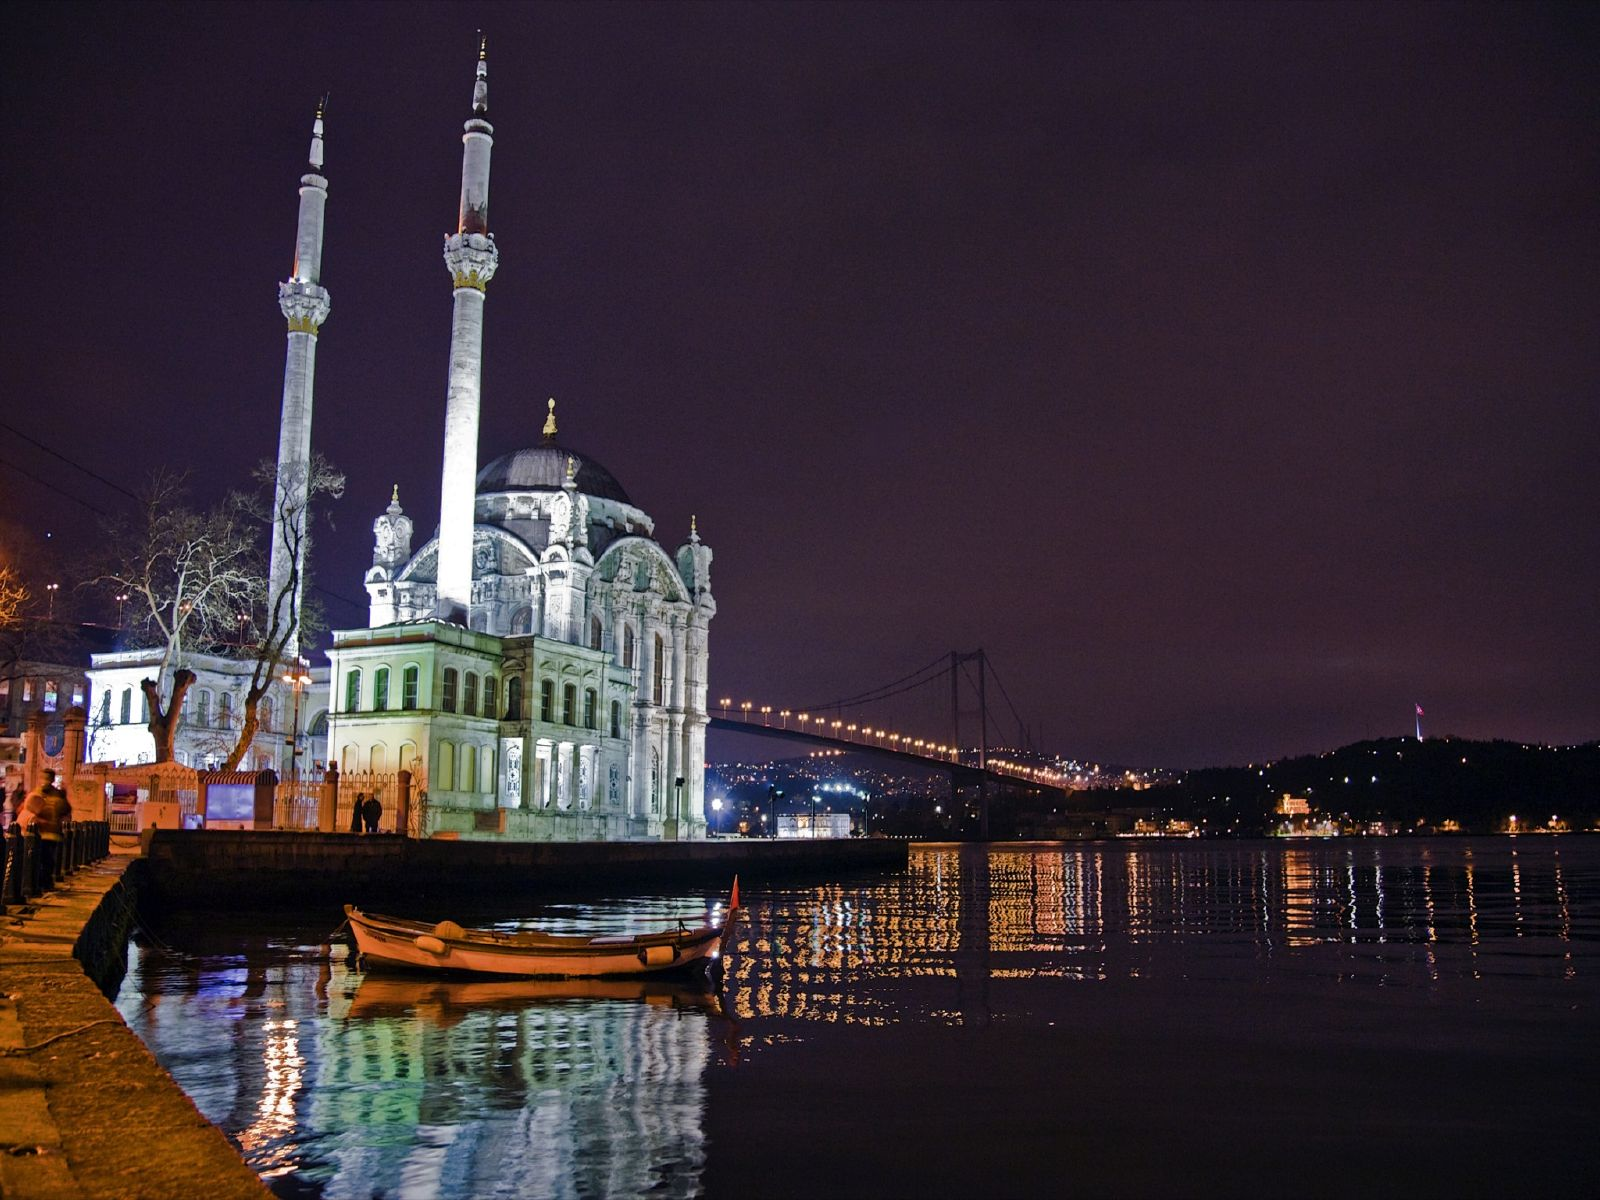 Ortakoy Mosque, Ciragan Palace Kempinski Istanbul, Neo-Baroque style Ortakoy Mosque, Ortakoy Pier Square, Tugra Turkish restaurant, Istanbul luxurious hotel,